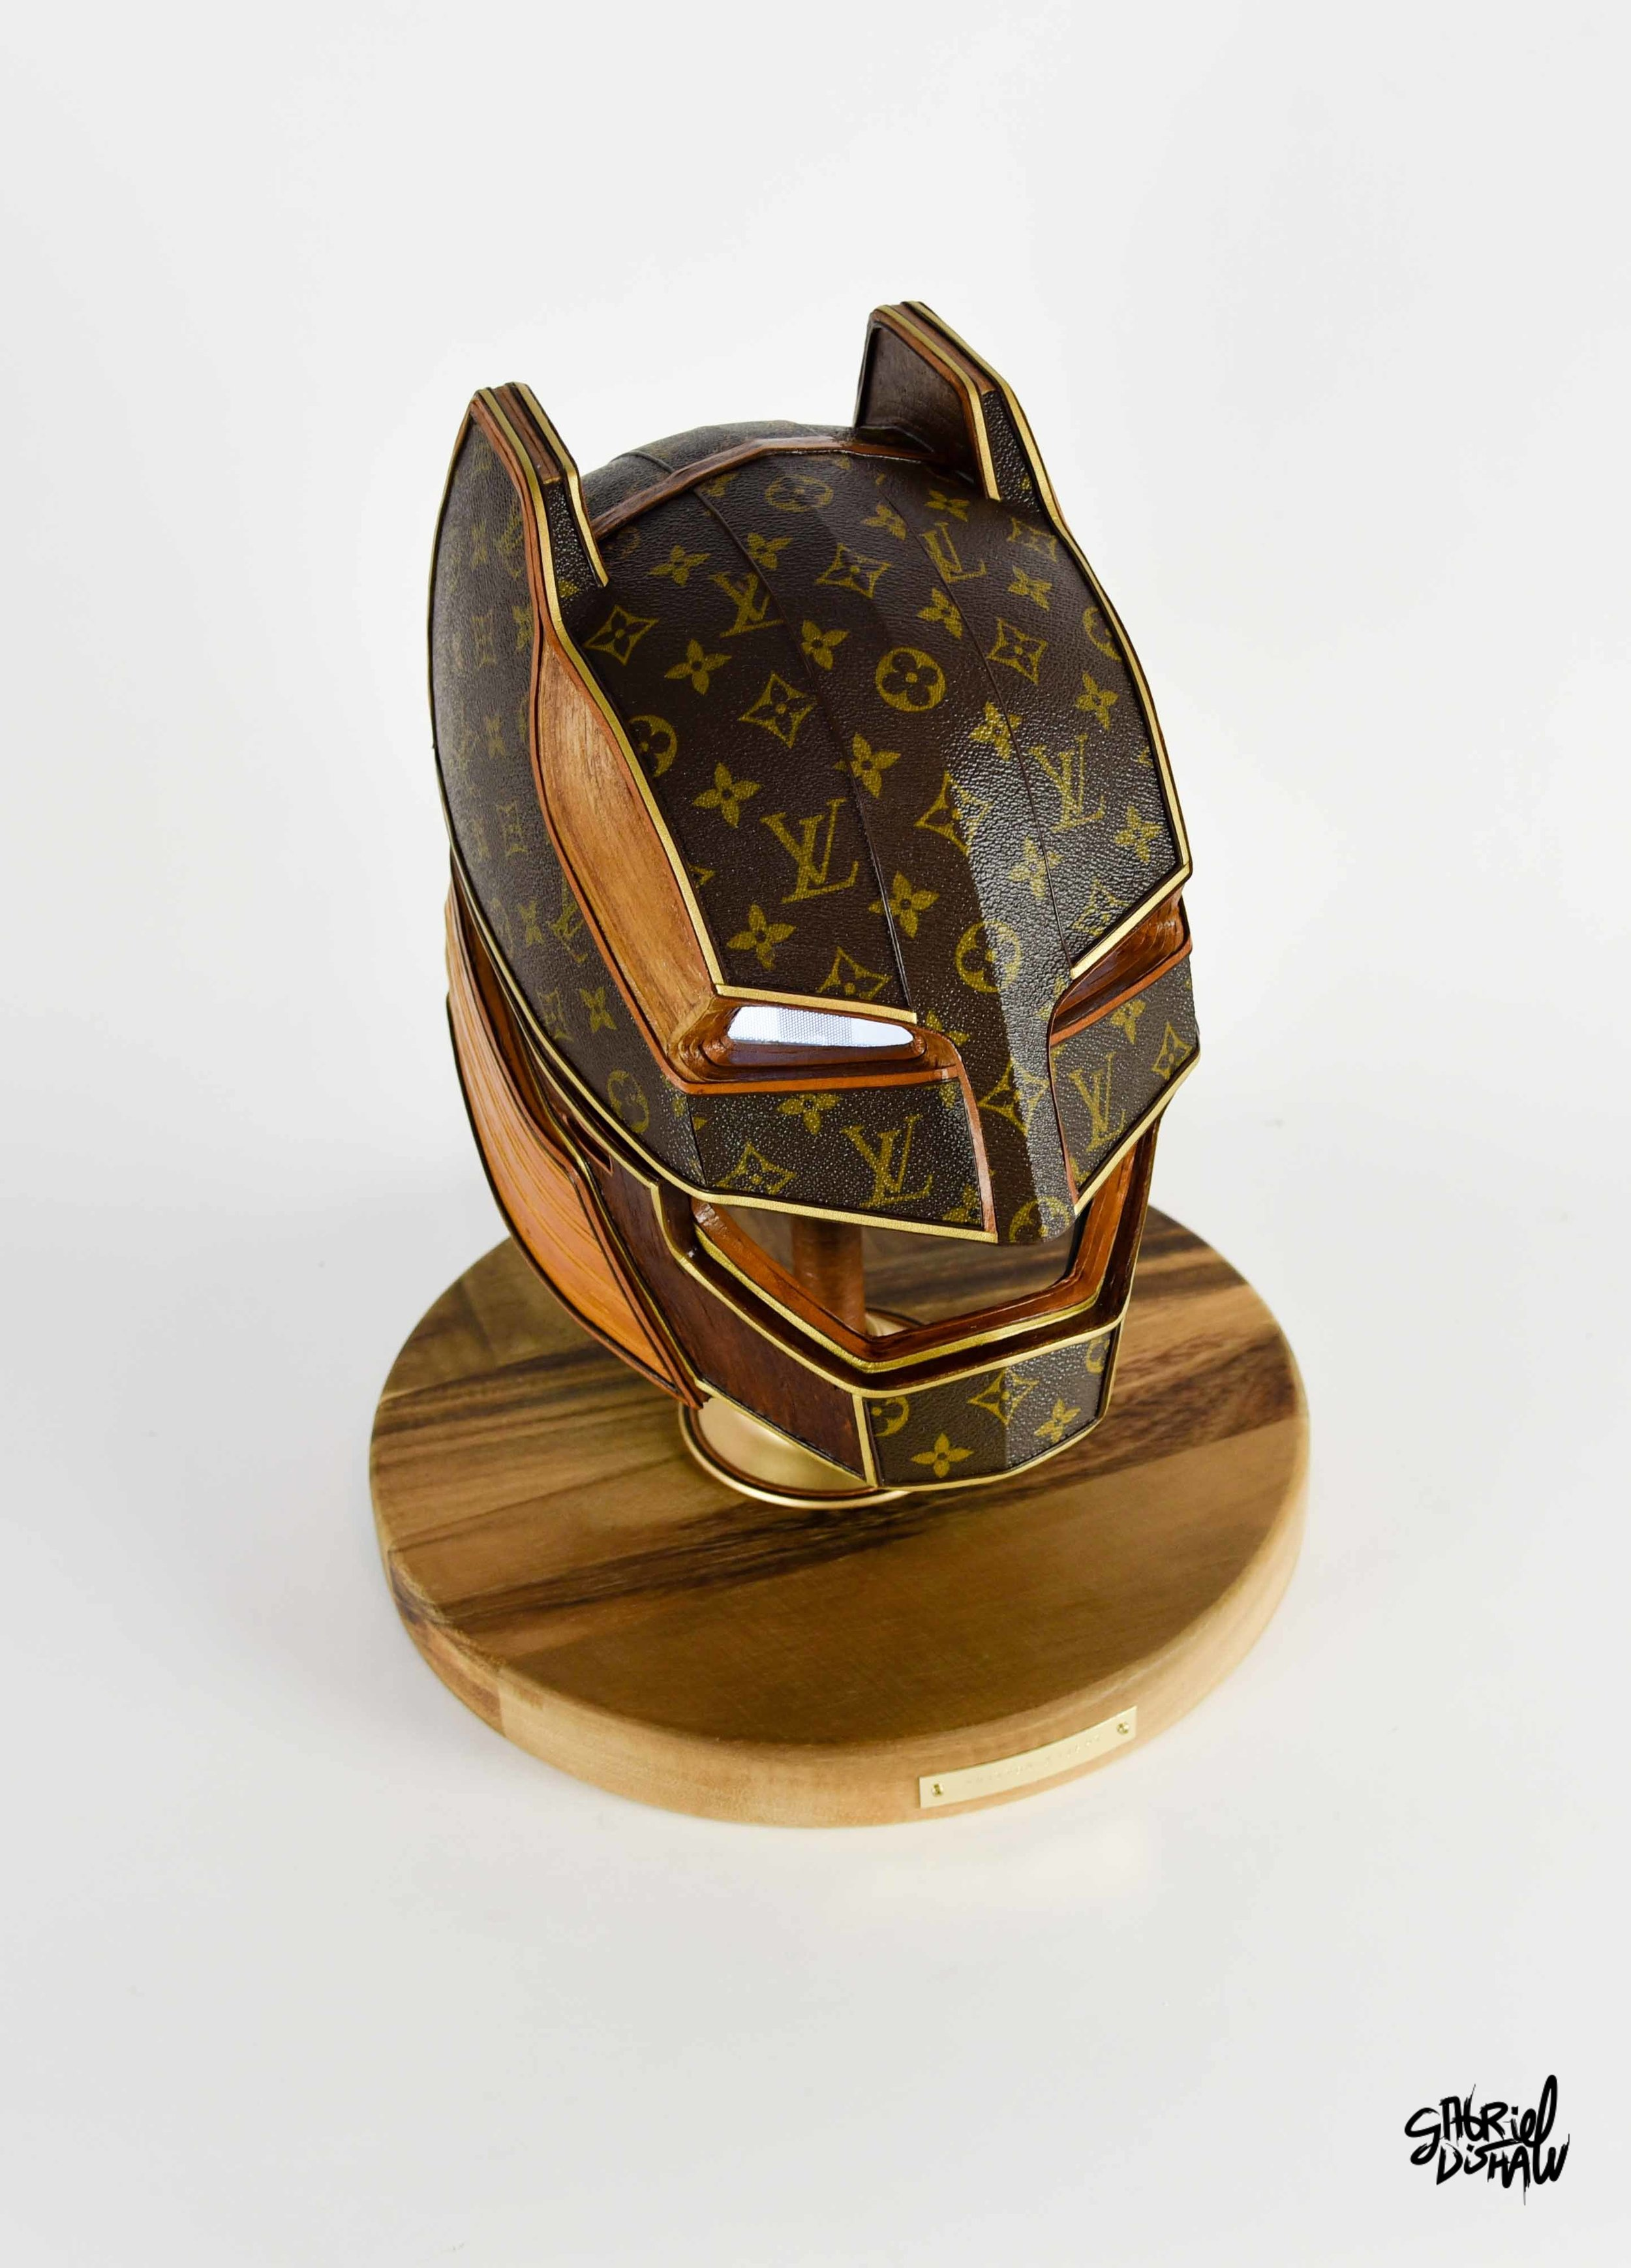 Gabriel Dishaw Vuitton Knight (98 of 164).jpg